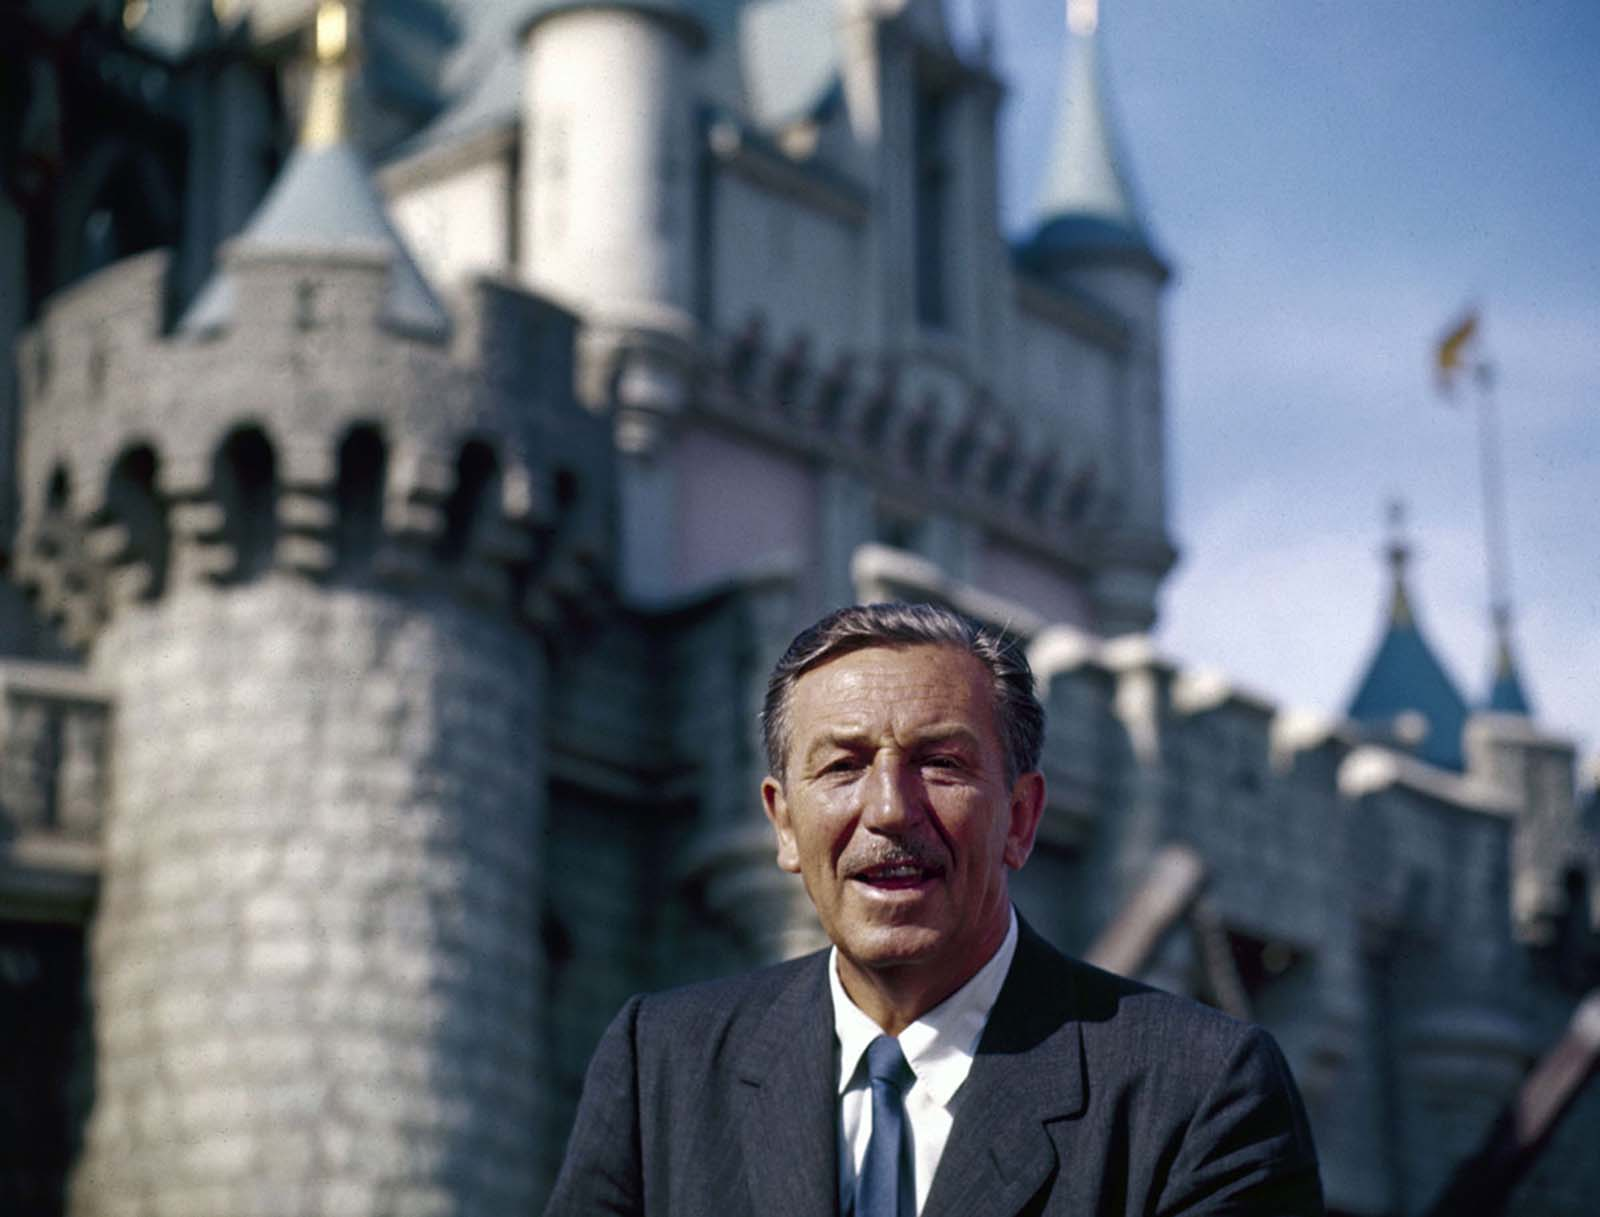 The movie producer and animator Walt Disney smiles as he stands in front of Sleeping Beauty's Castle at the grand opening of Disneyland in 1955.